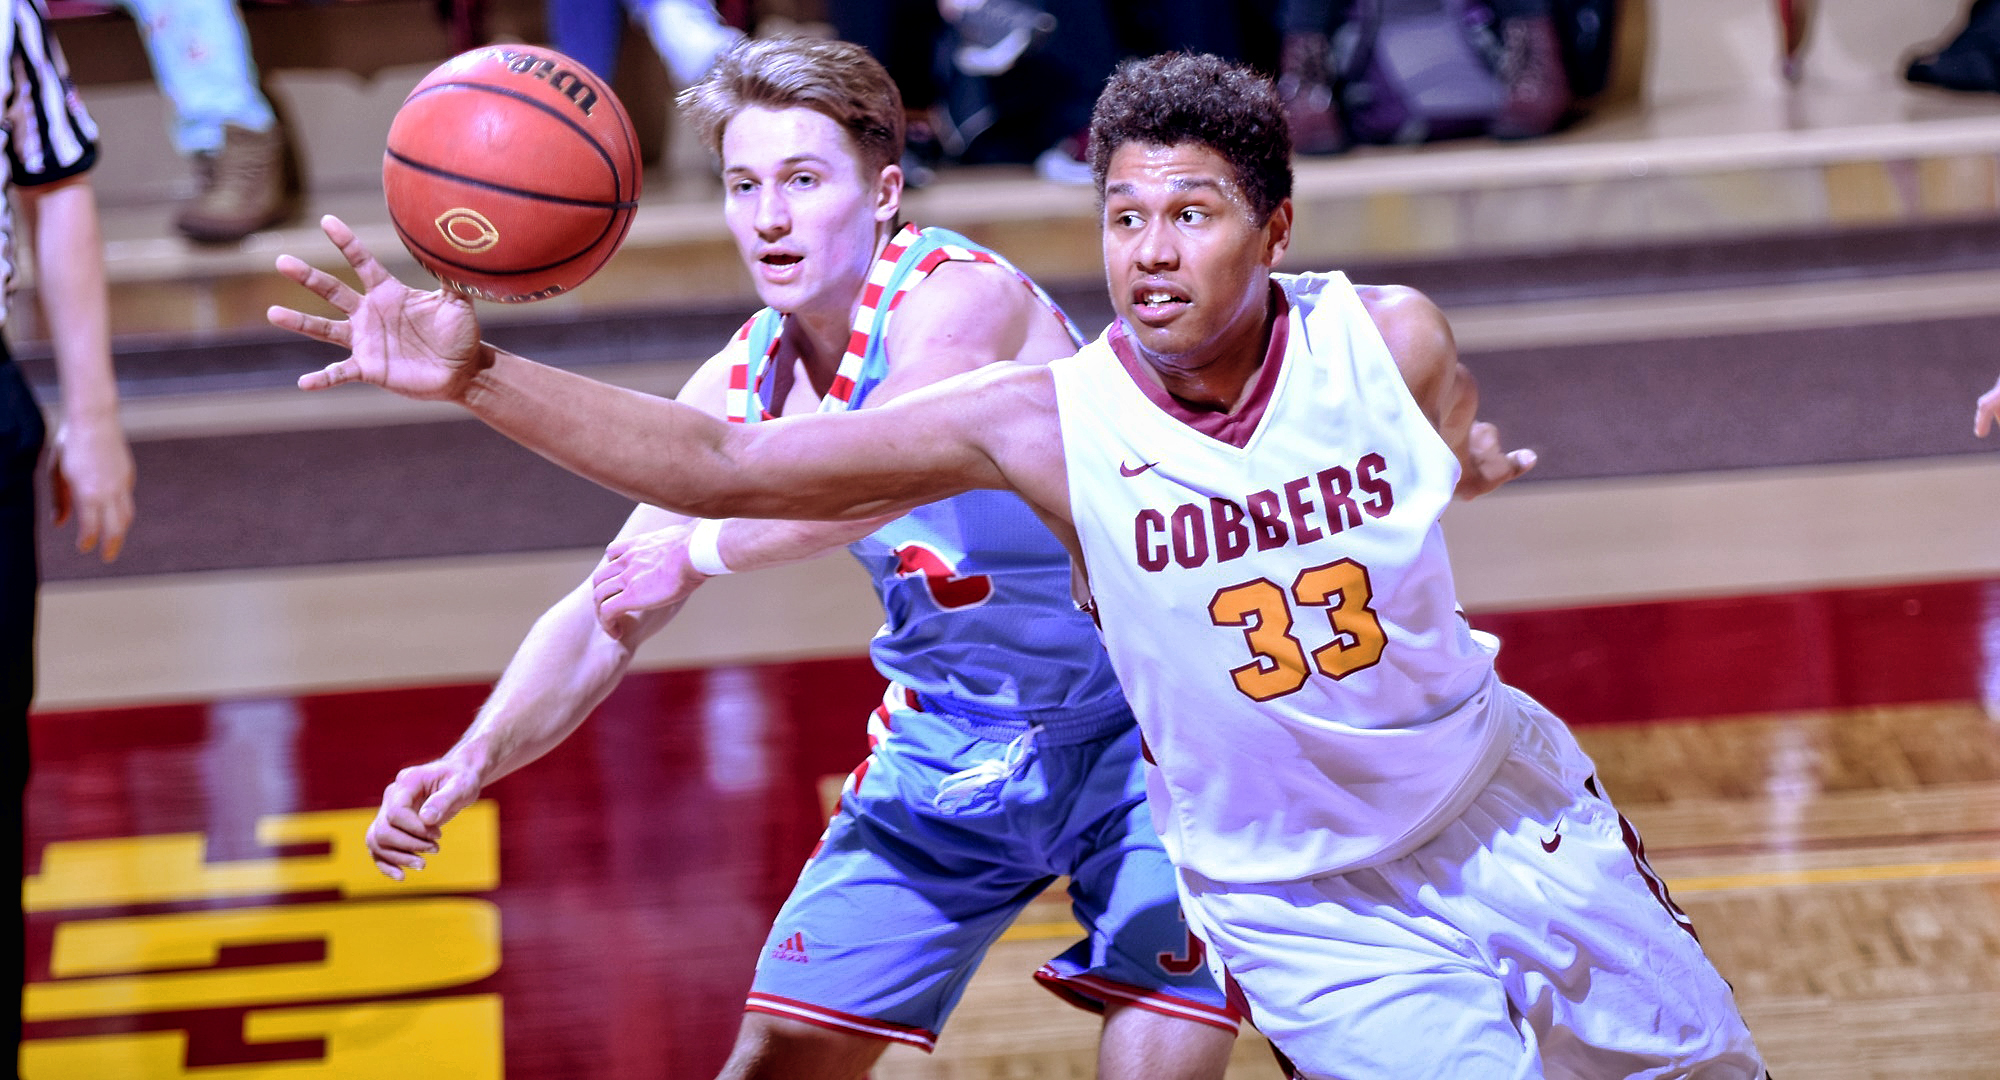 Ty Setness had five points and four rebounds in the Cobbers' game at #12 St. John's.